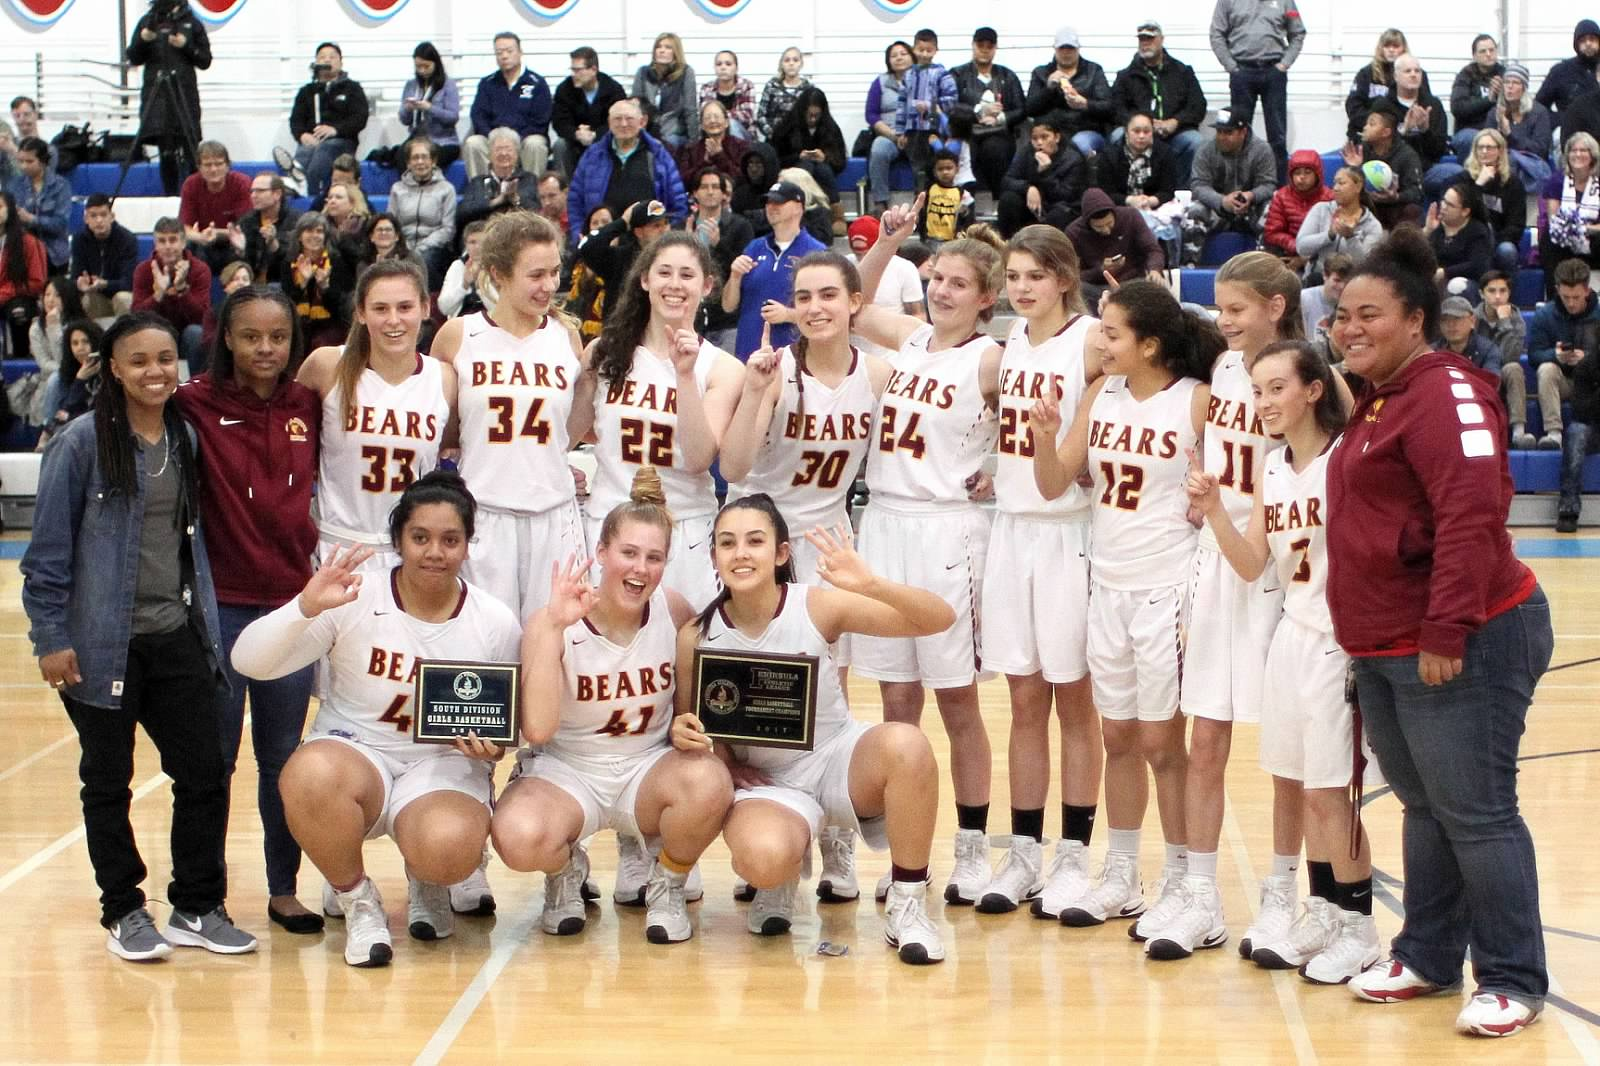 Girls Basketball ends the year with another successful season